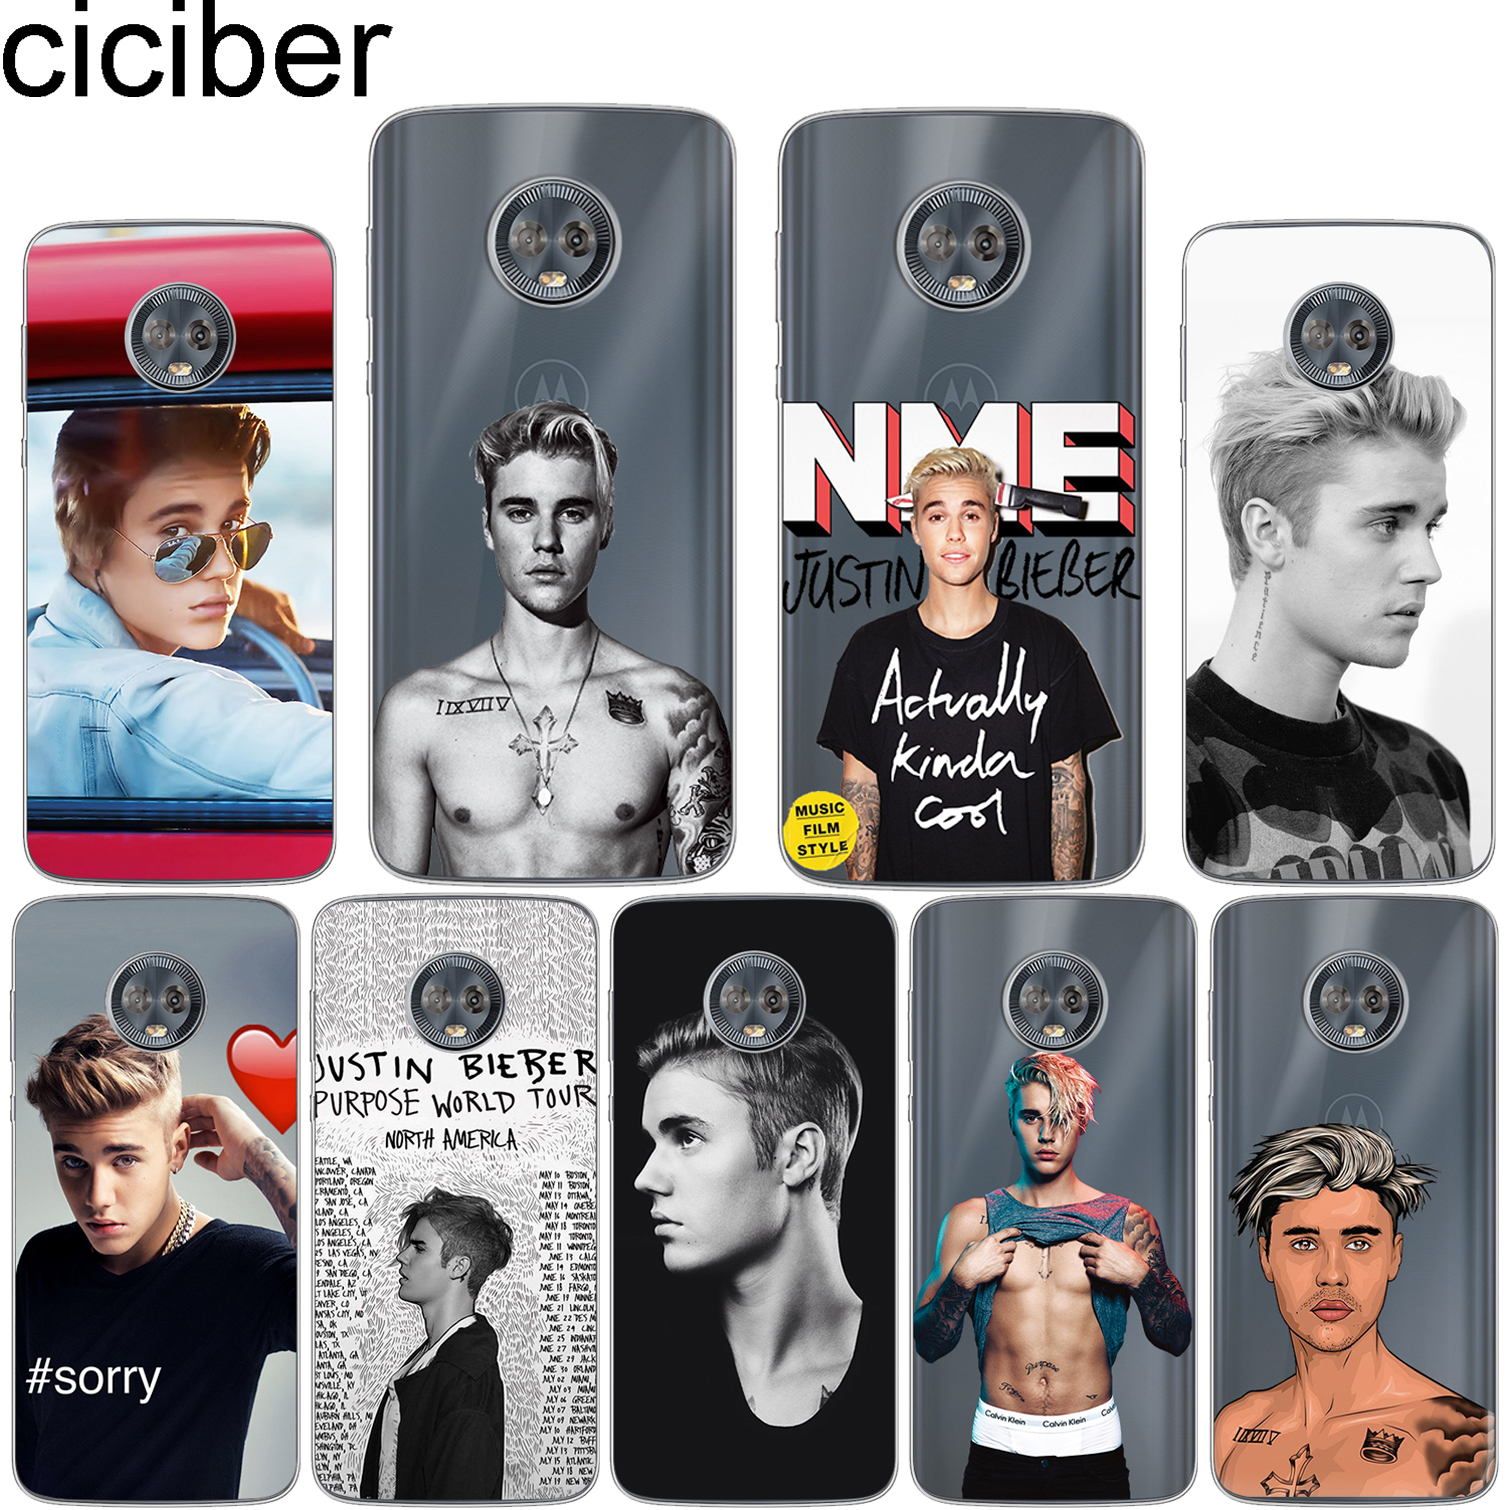 Fitted Cases Silicone Case Phone Cover For Motorola Moto G6 G5 G5s Z2 Z3 Play Plus X4 E4 E5 C Justin Bieber Purpose Tour